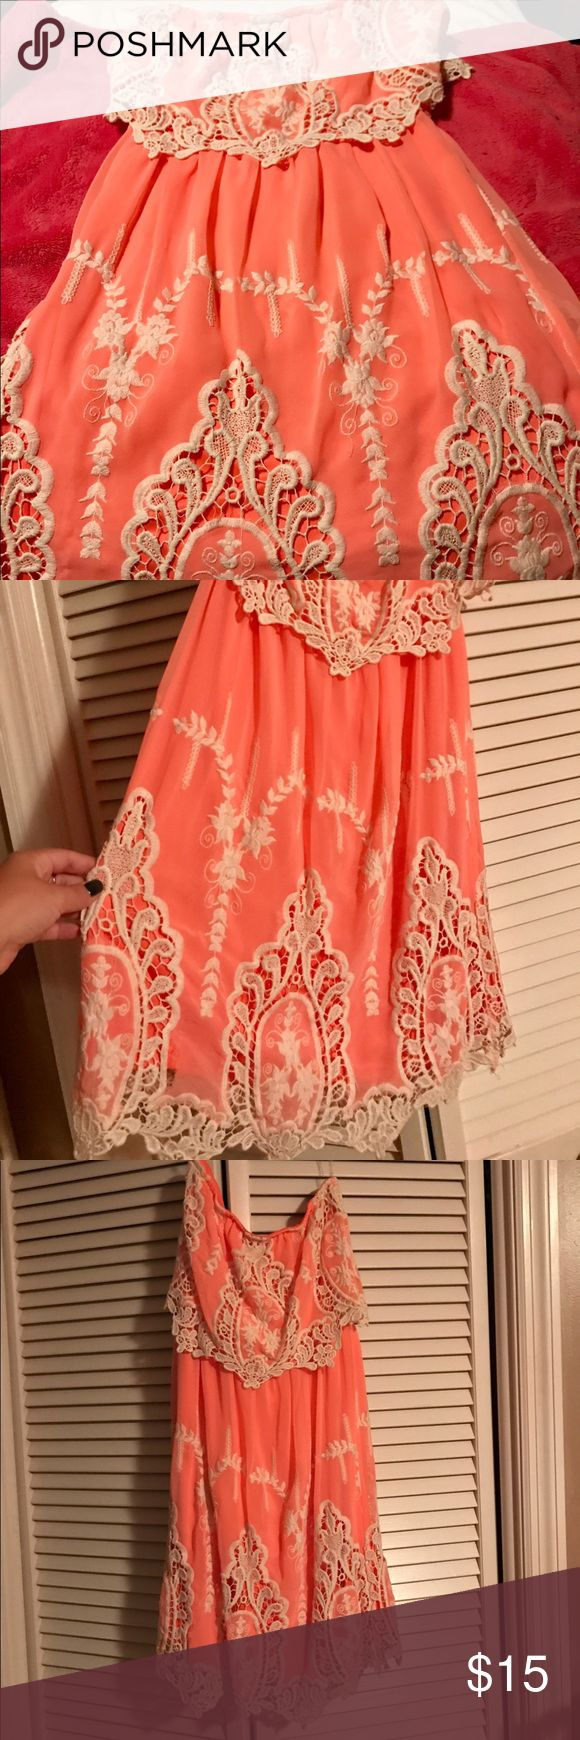 Strapless Coral Lace Dress Brand is Hot and Delicious. Worn once for a wedding. Color is bright coral with cream Lace trim. hot and delicious Dresses Mini